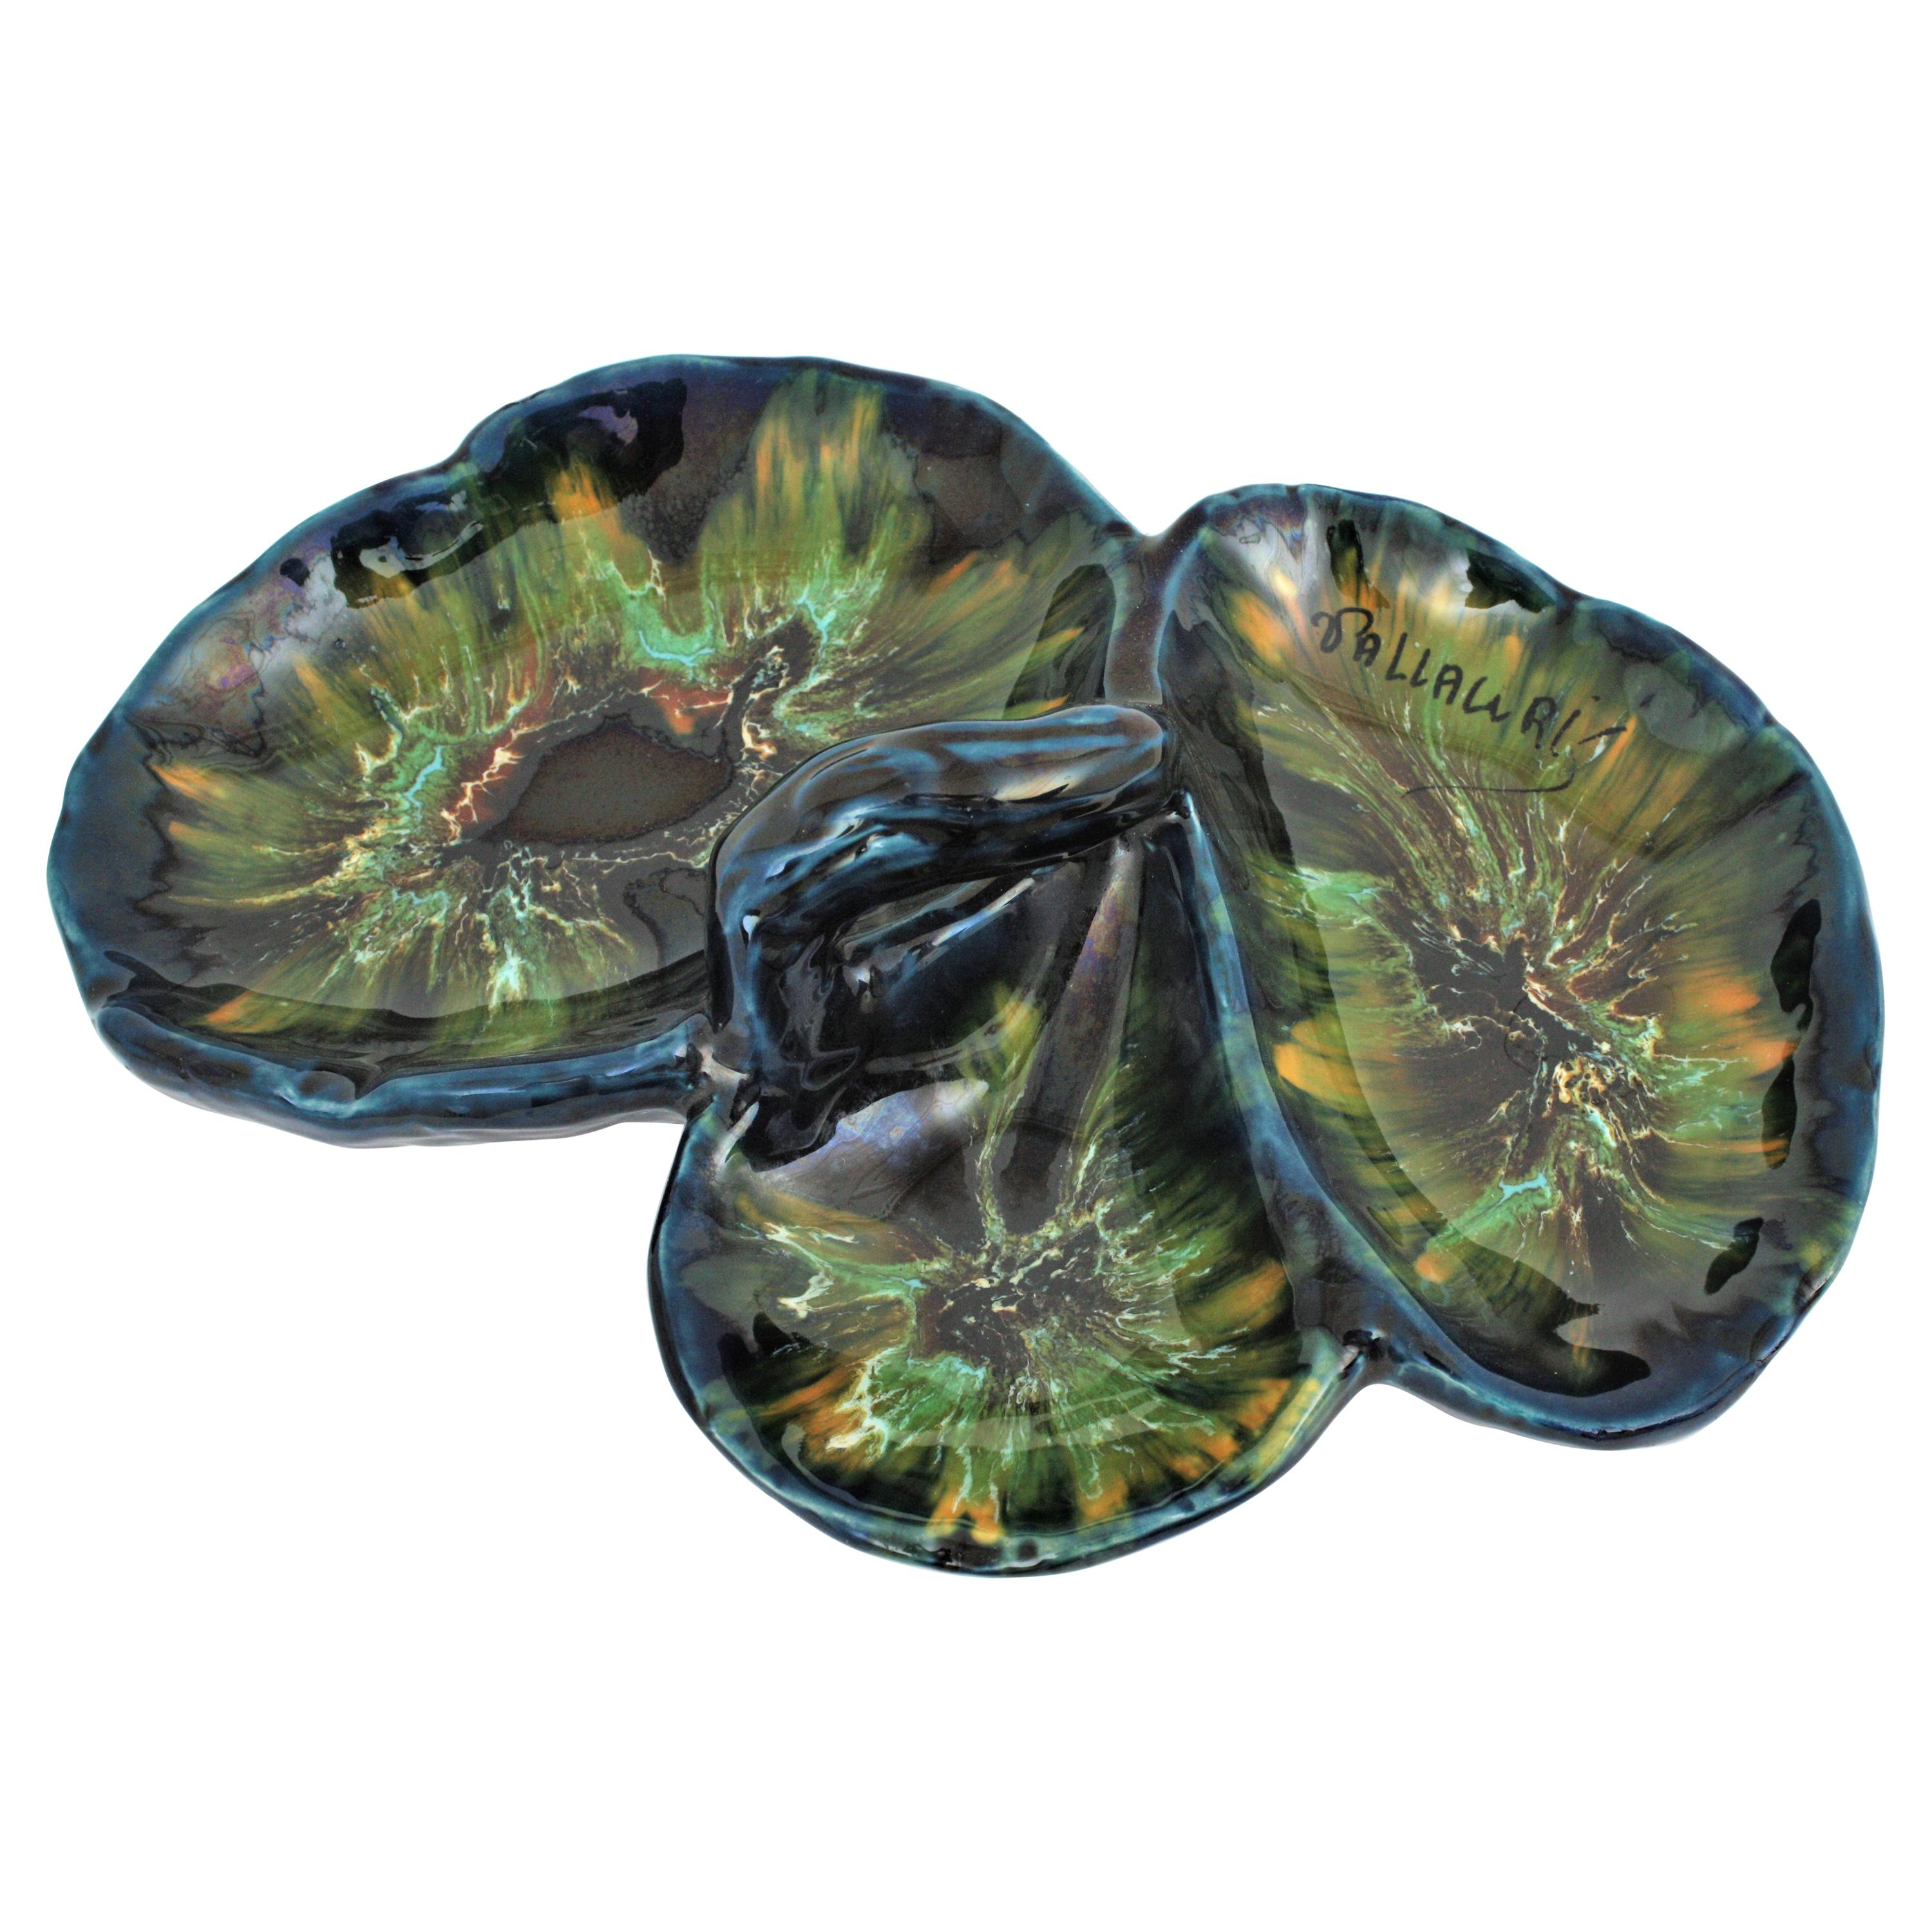 French Vallauris Majolica Ceramic Serving Tray or Centerpiece, 1960s